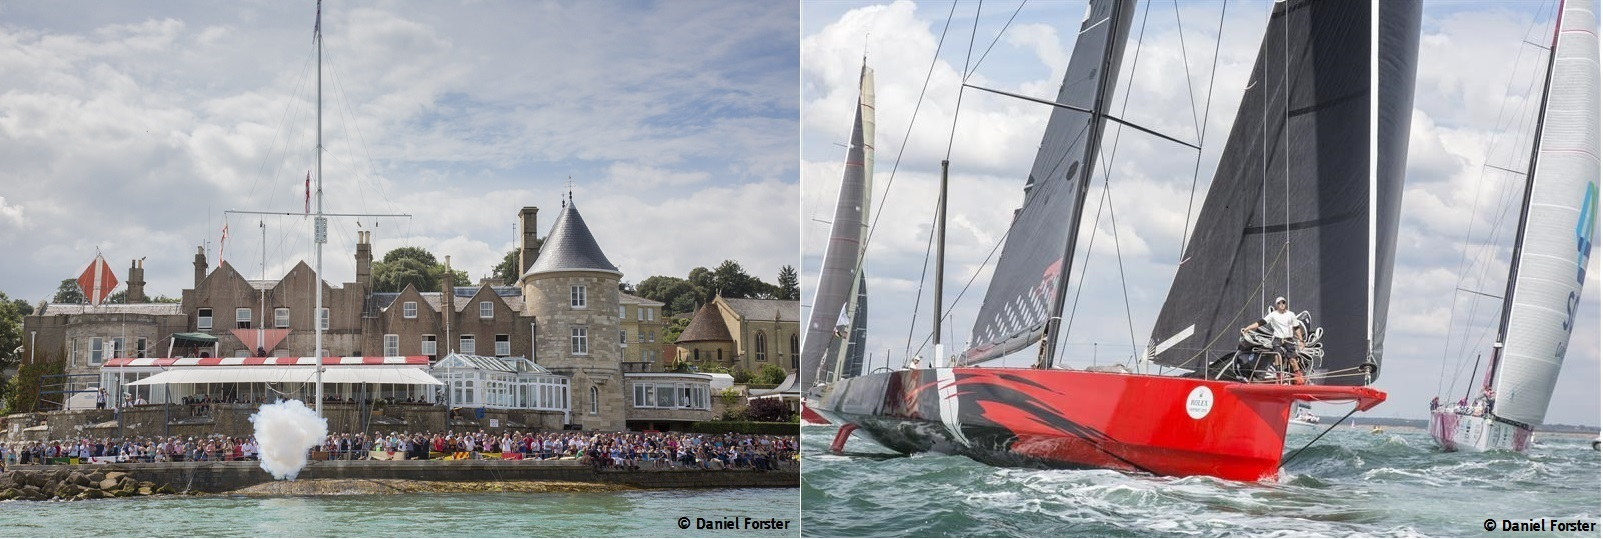 Fastnet Race Start at Cowes